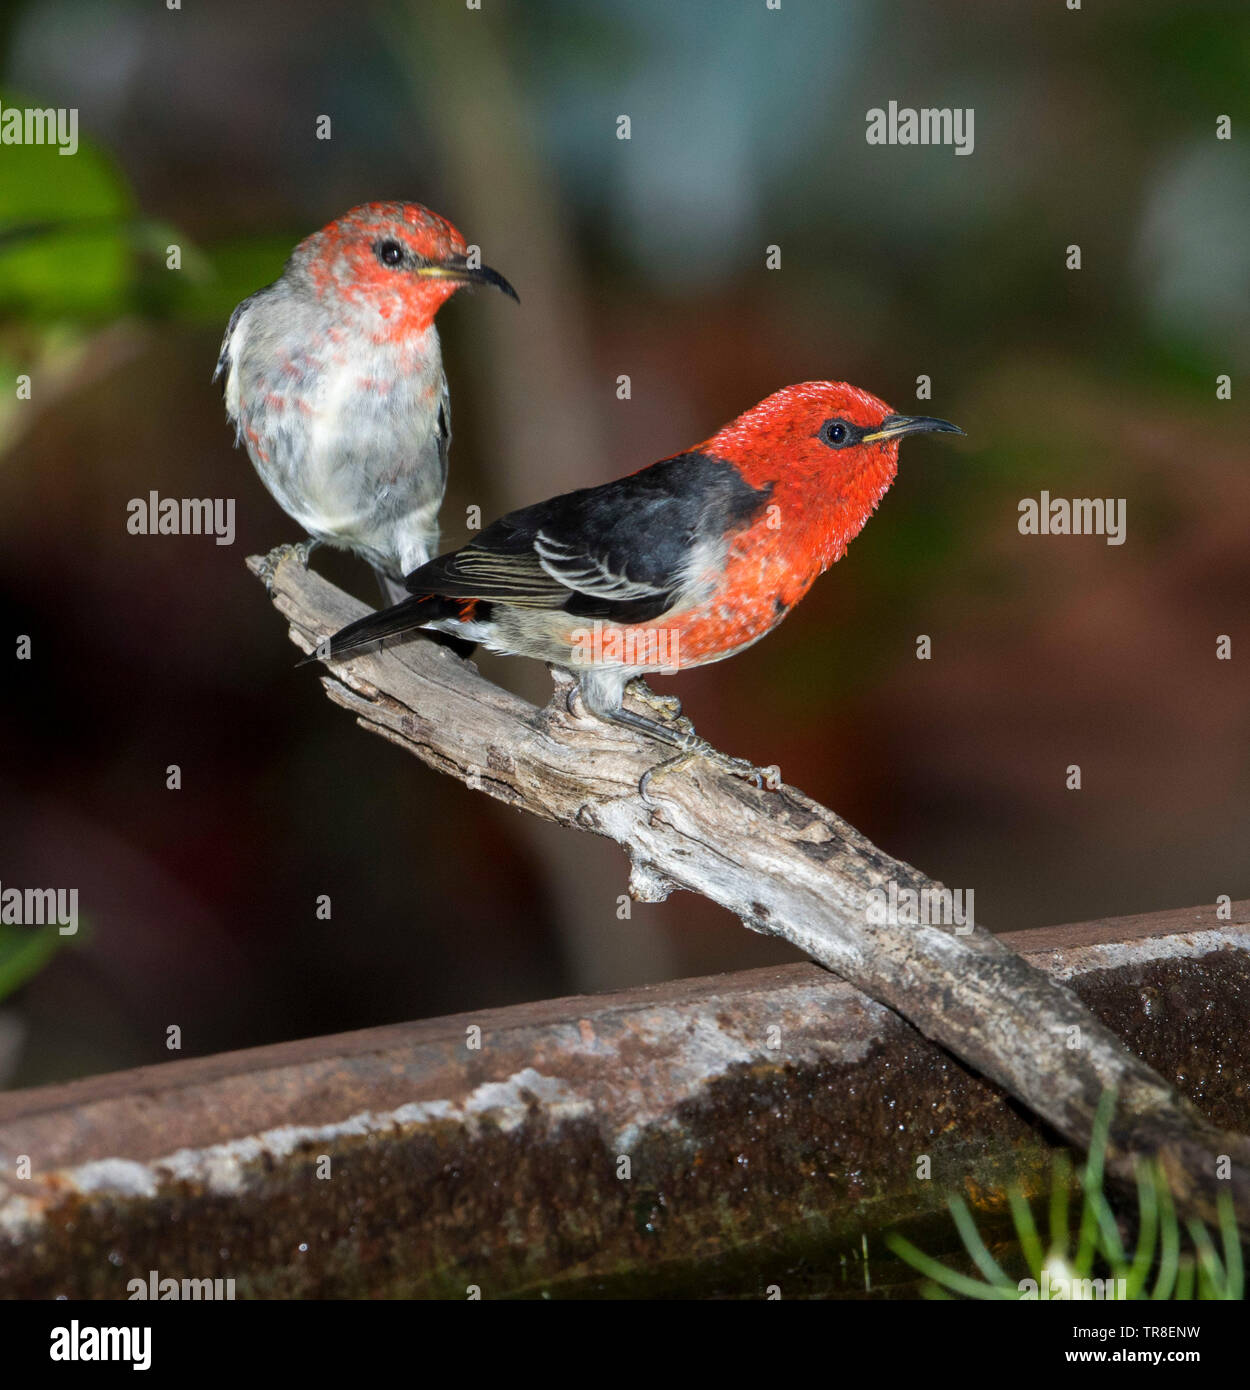 Pair of spectacular red and black male Australian Scarlet Honeyeaters, Myzomela sanguinolenta, at garden bird bath - Stock Image